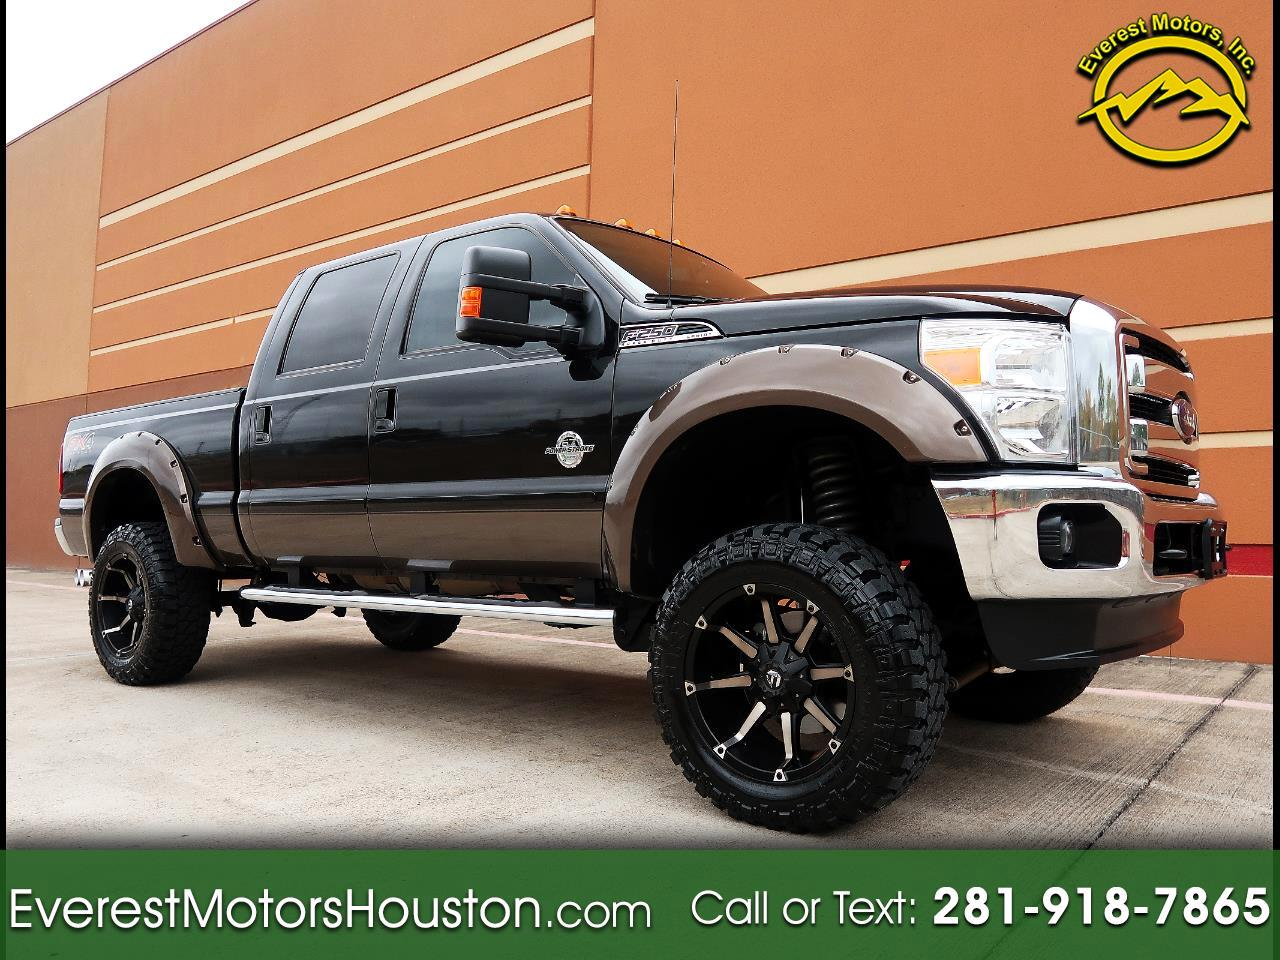 Used Cars For Sale Houston Tx 77063 Everest Motors Inc 2015 Ford F 250 King Ranch Sel Super Duty Srw 4wd Crew Cab 156 Lariat